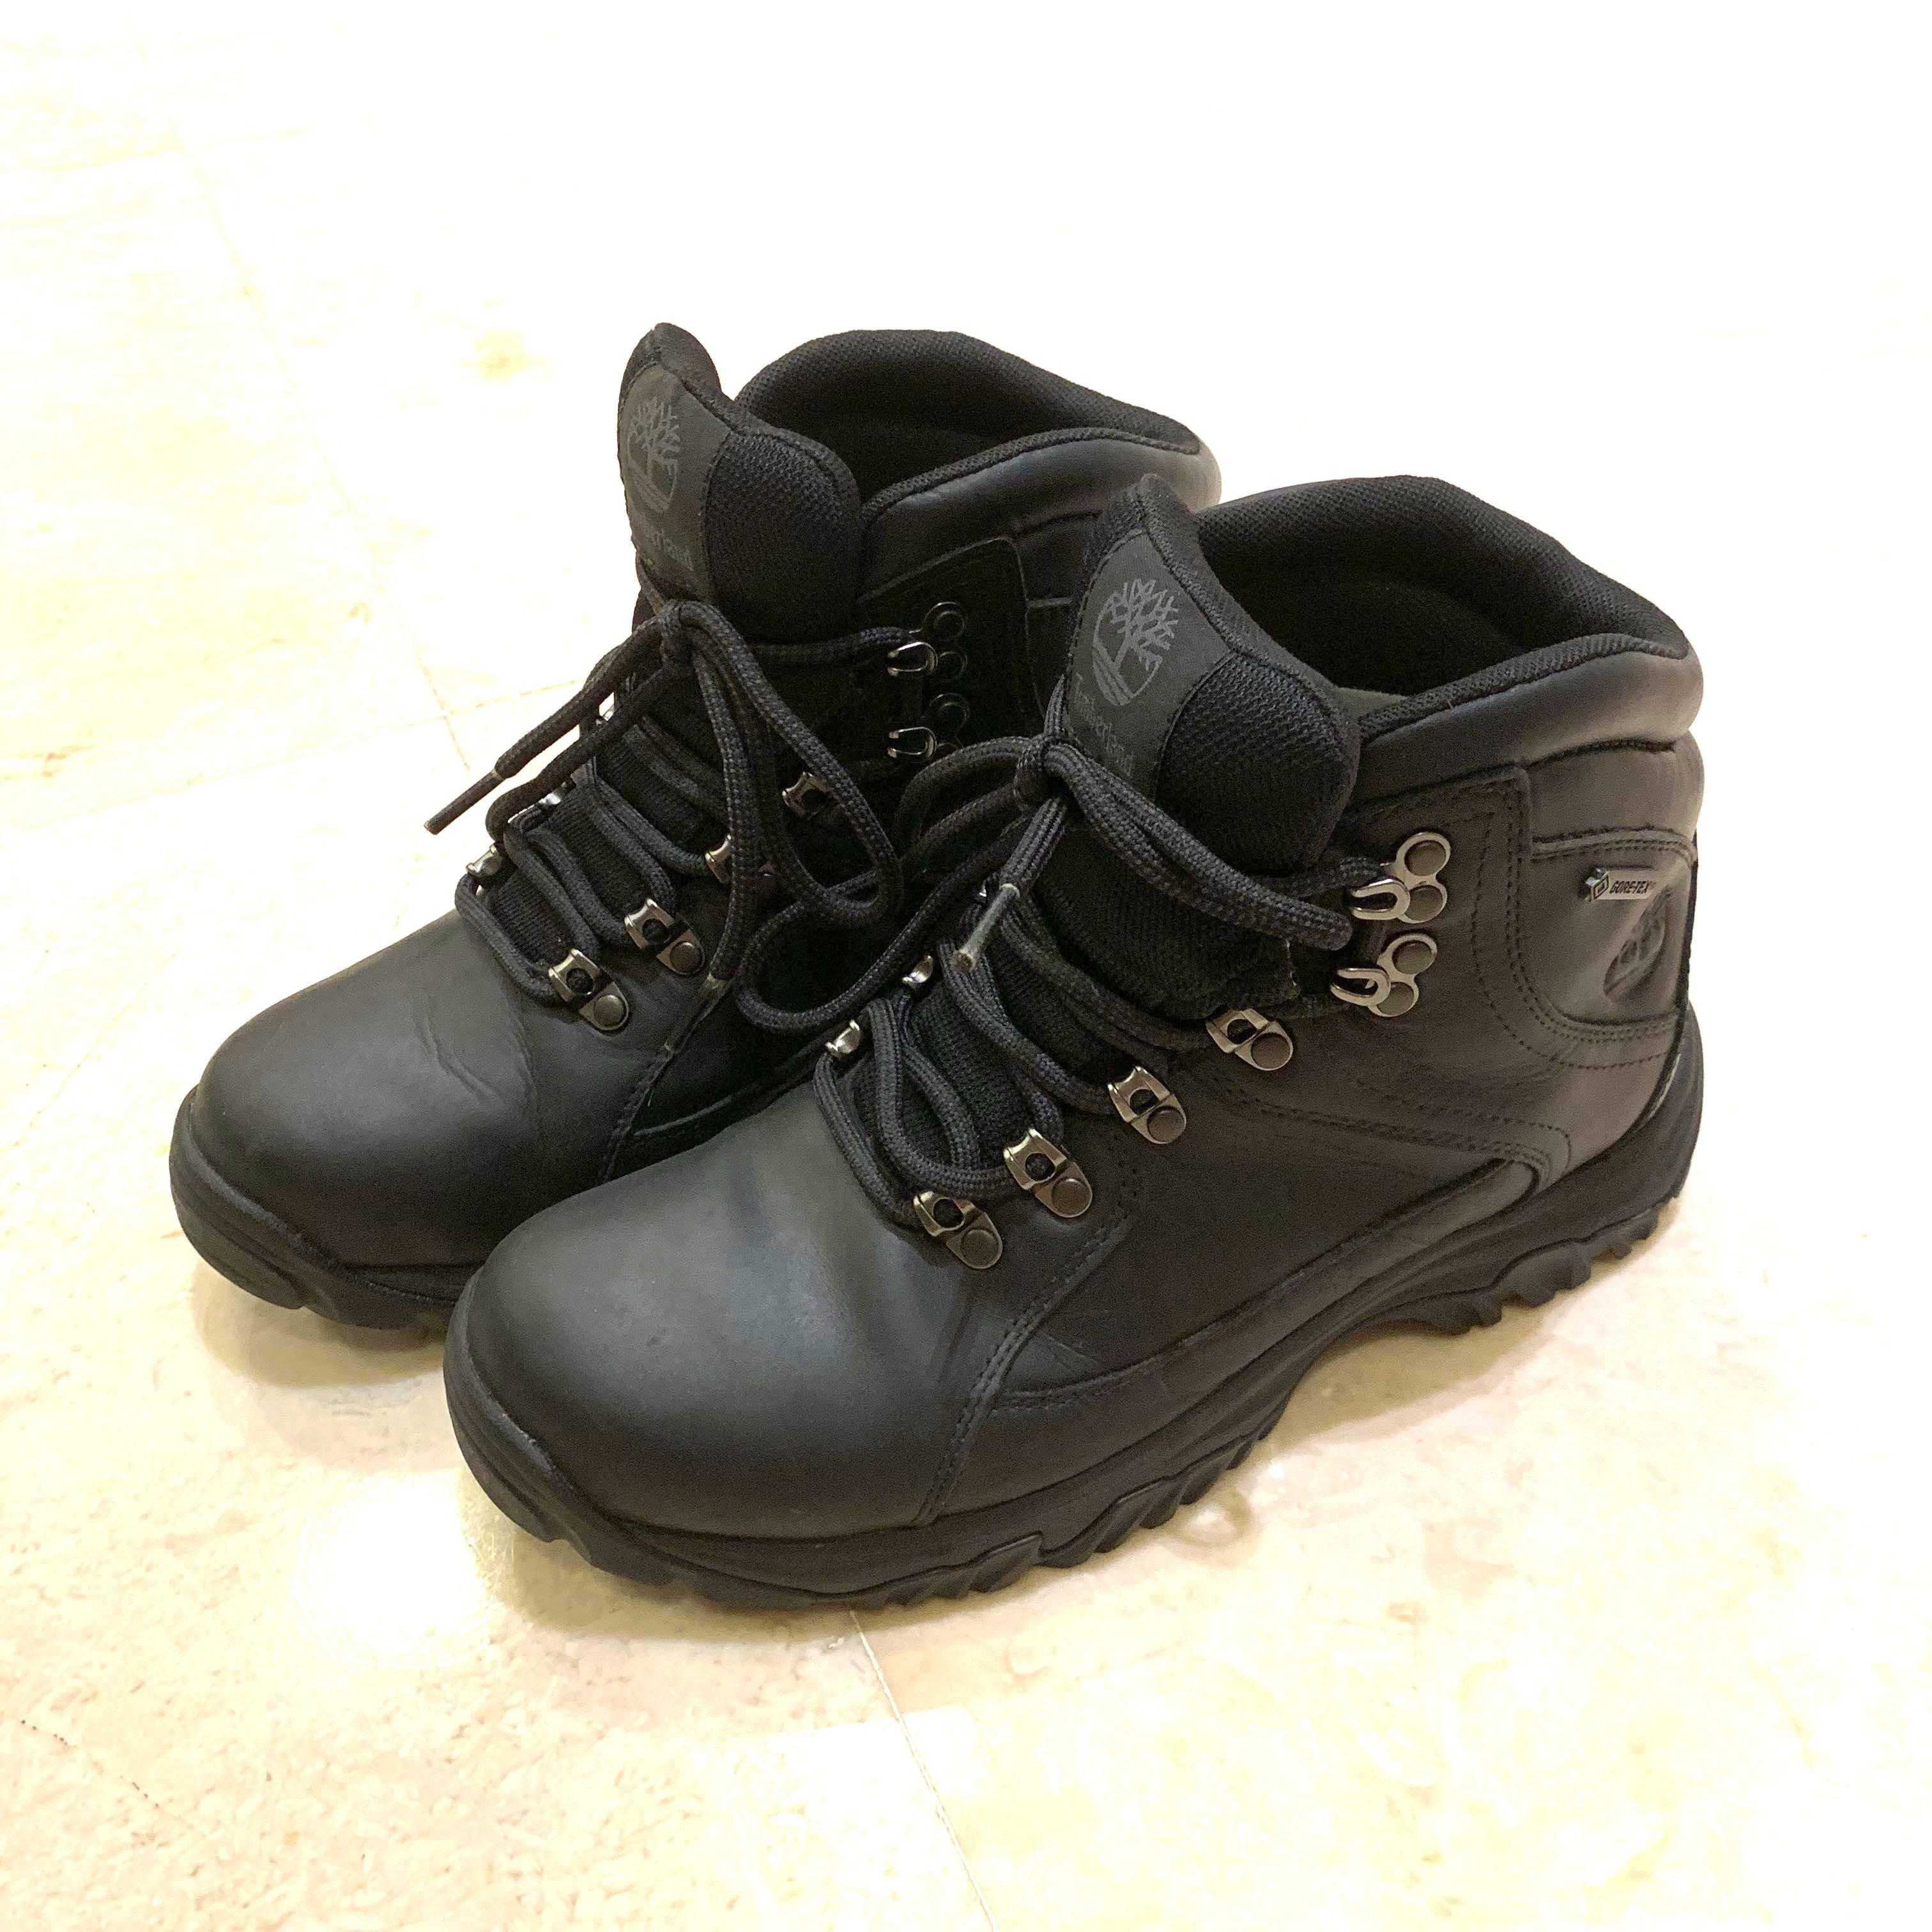 timberland hiking shoes mens